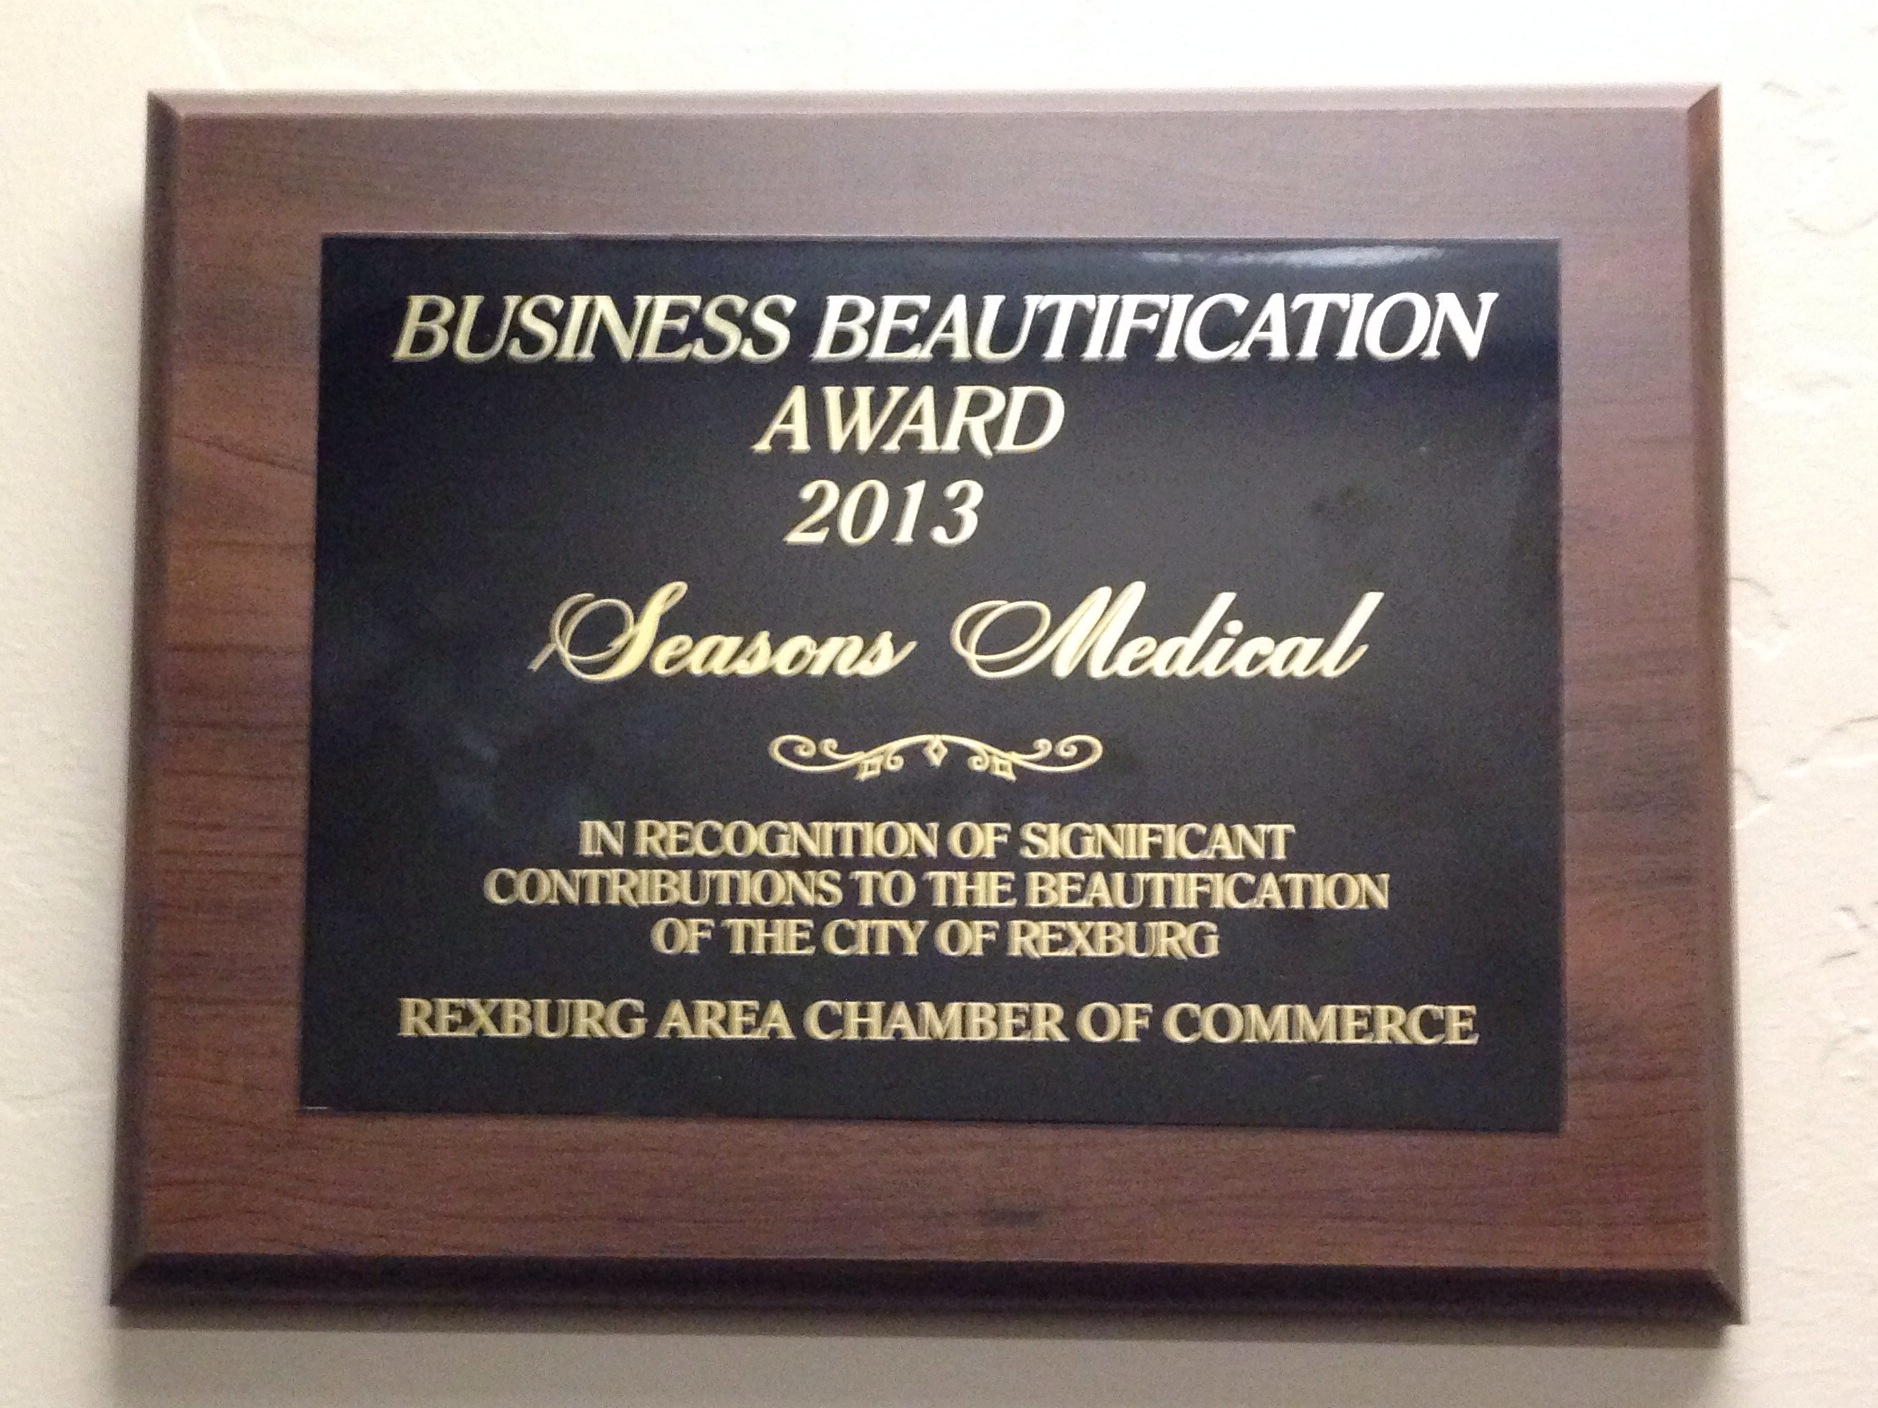 Seasons Medical Recognized with Business Beautification Award